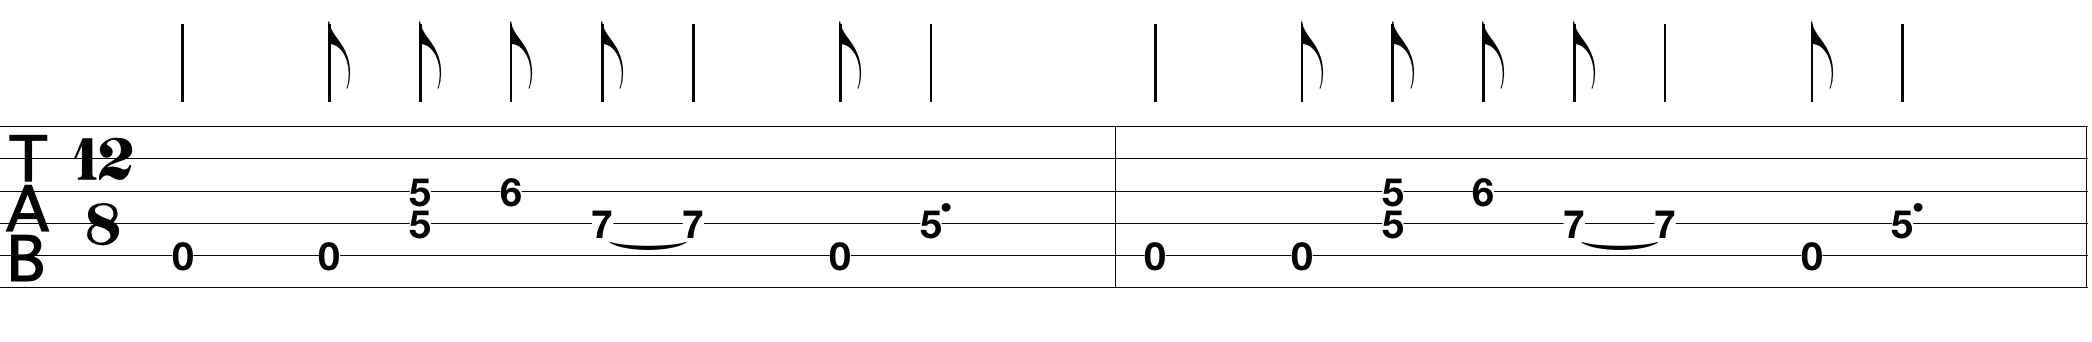 guitar-tabs-blues_1.png